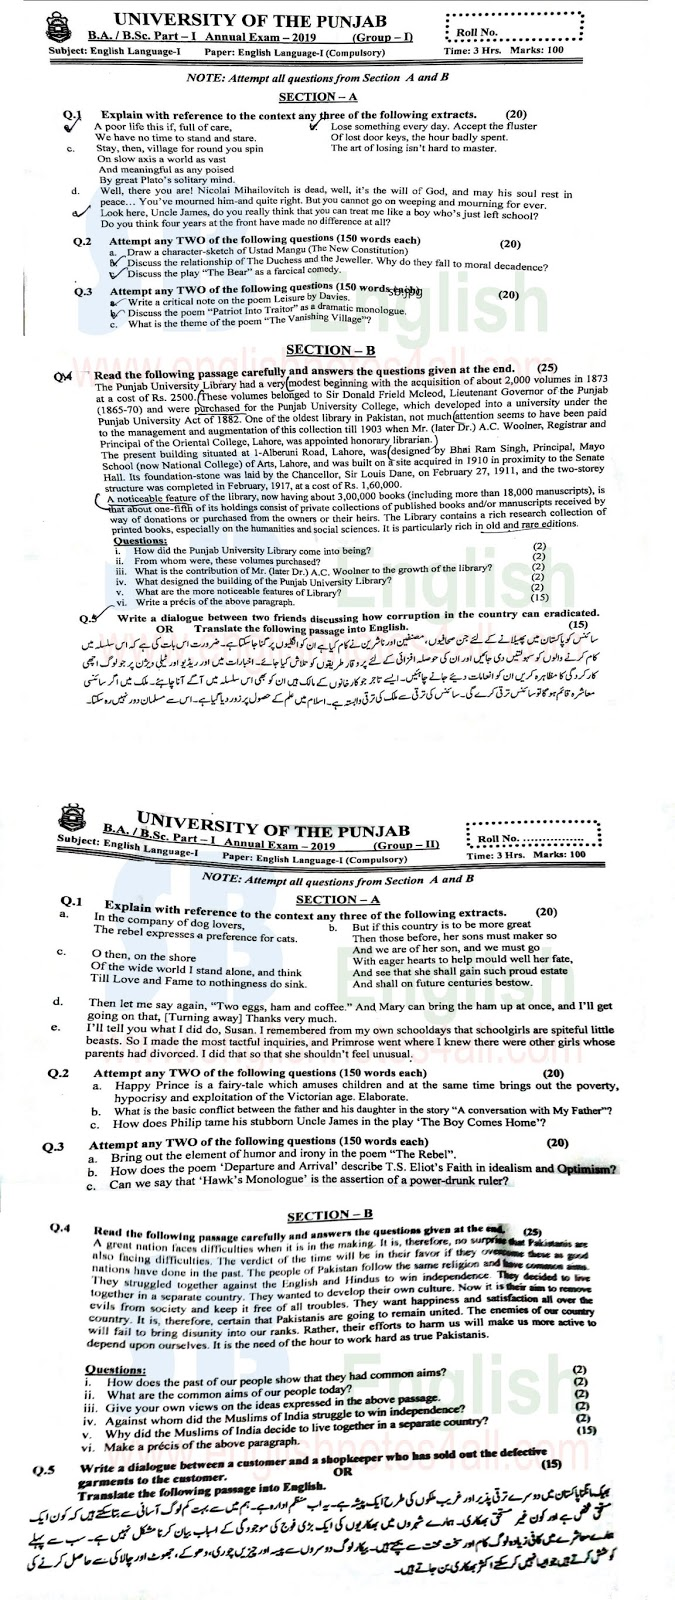 BA English part.1 morning evenong annual 2019 pu past papers,pu annual 2019 papers,Punjab University Annual 2019 ba english papers,